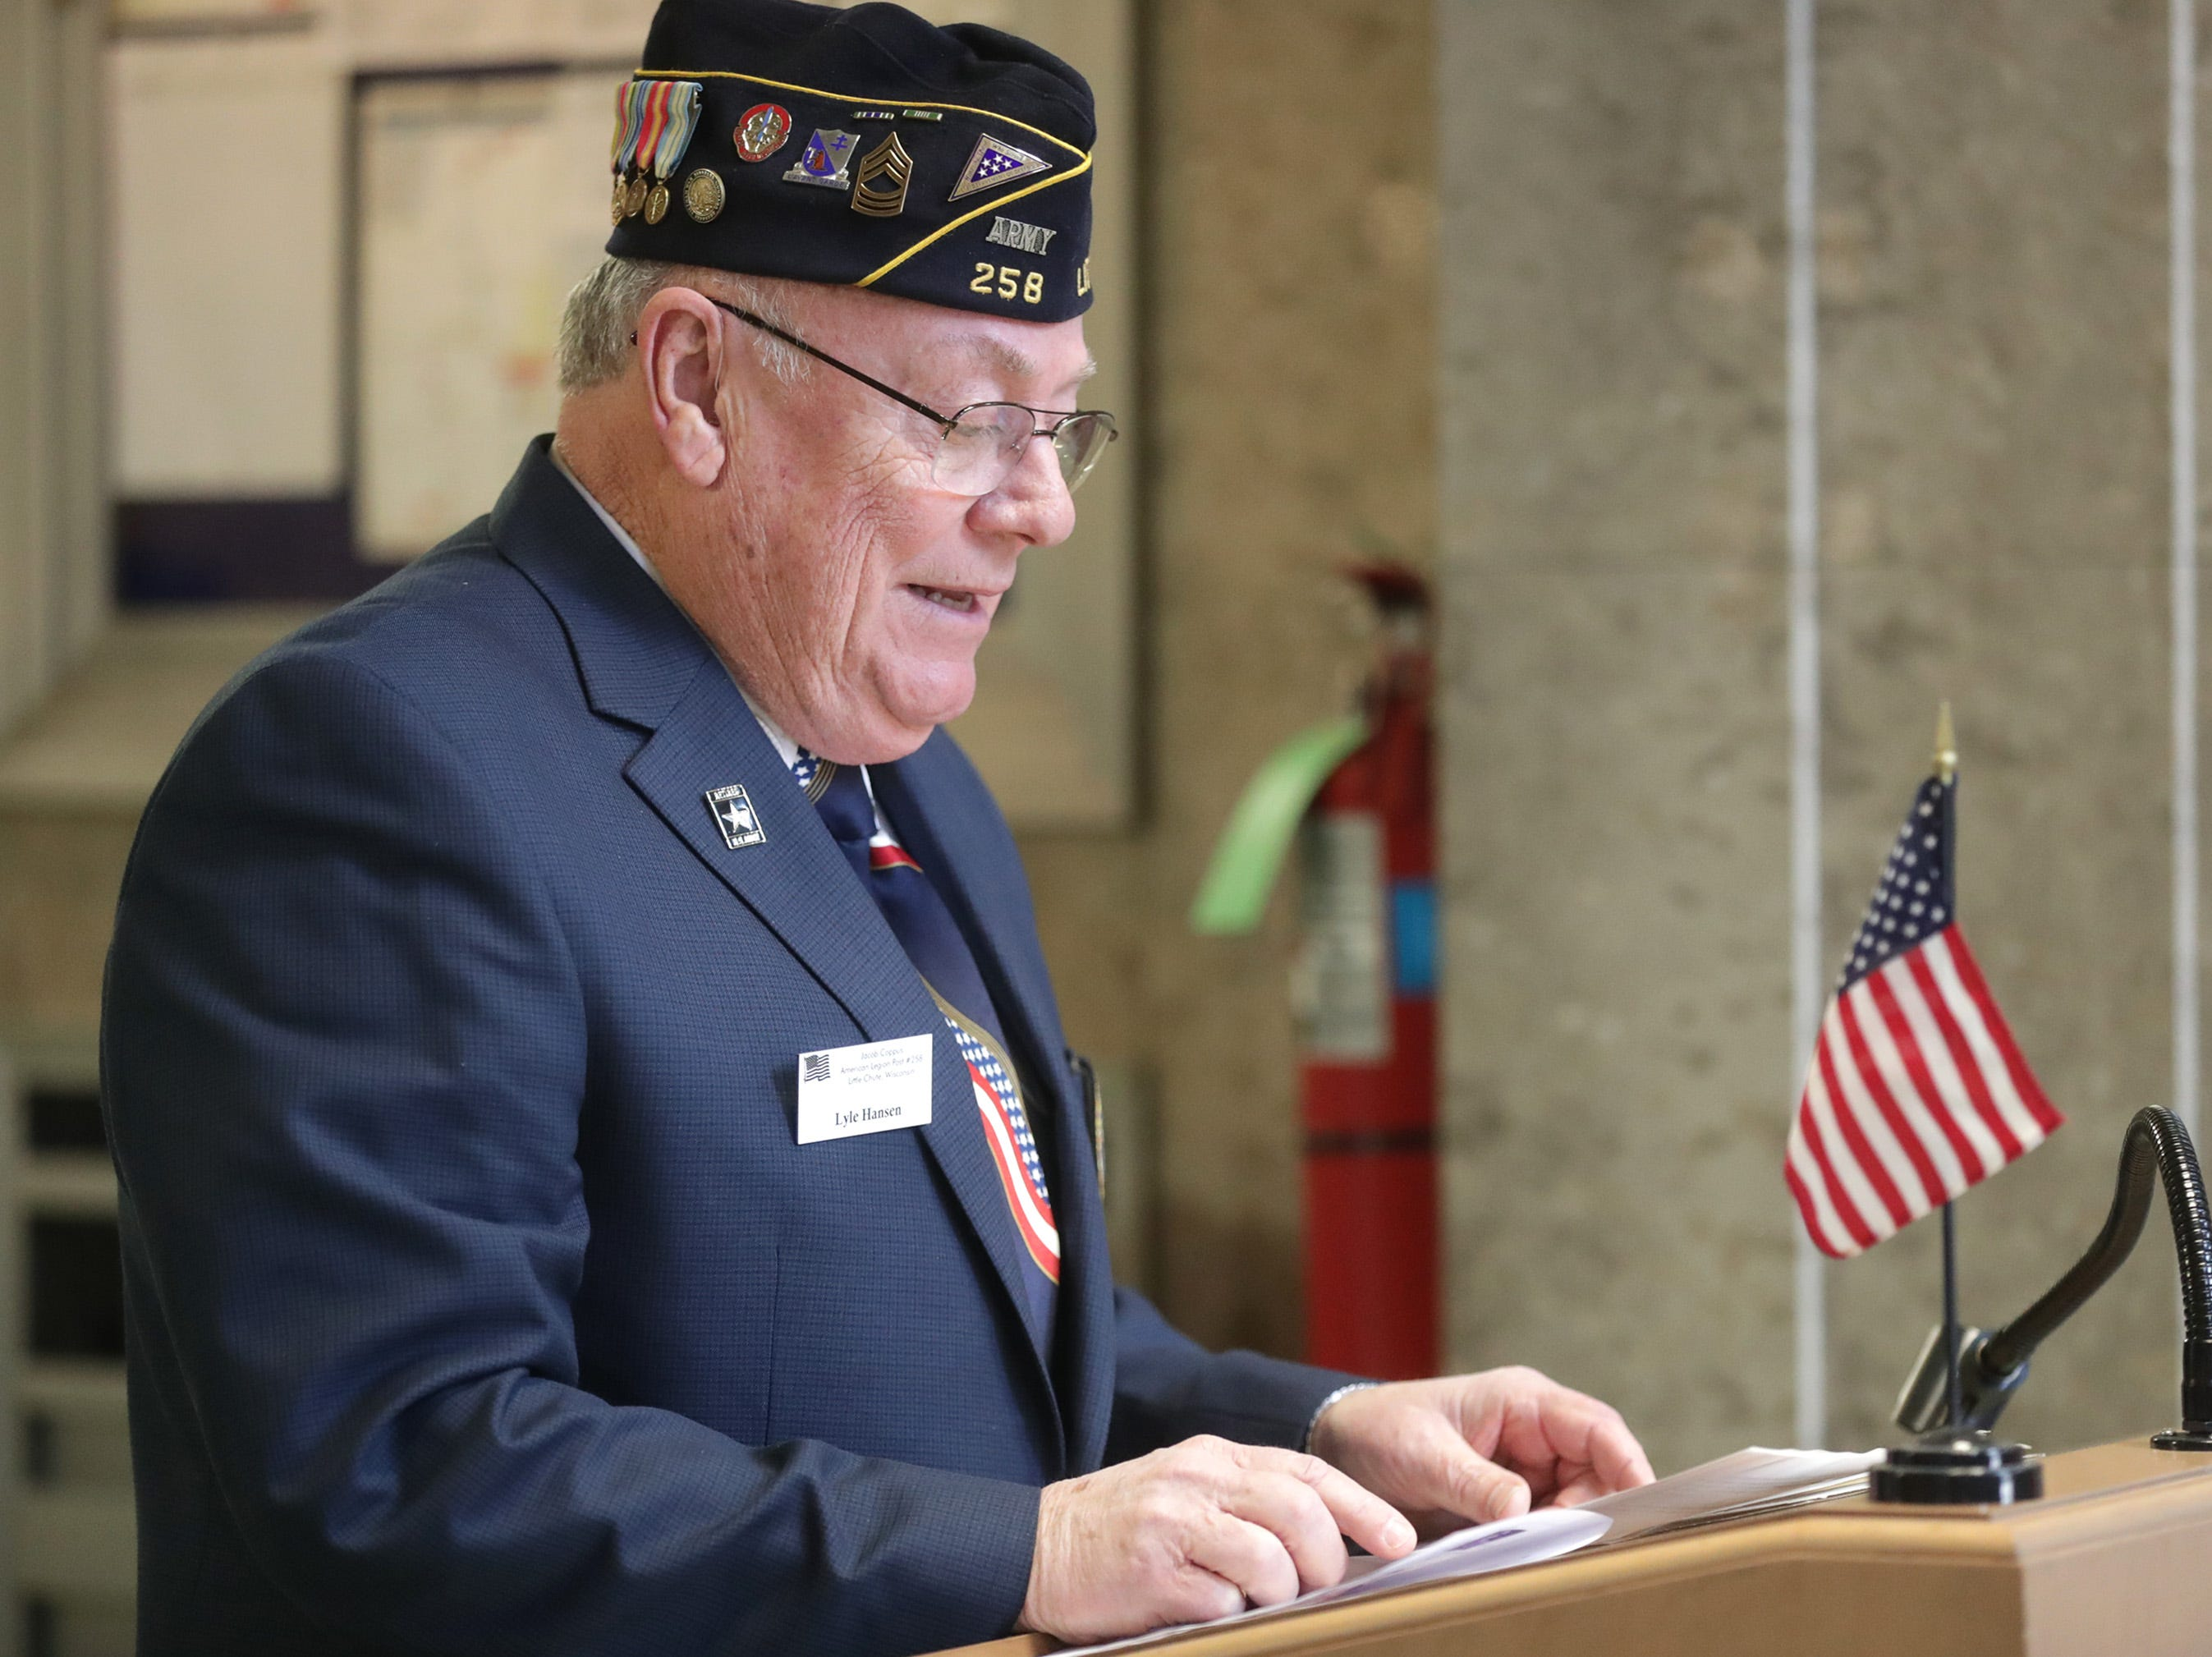 Keynote speaker Master Sgt. Lyle Hansen talks during the Outagamie County Veterans Day Service on Sunday, Nov. 11, 2018, in Appleton, Wis. The service, in part, commemorated the 100th anniversary of the end of WW I.